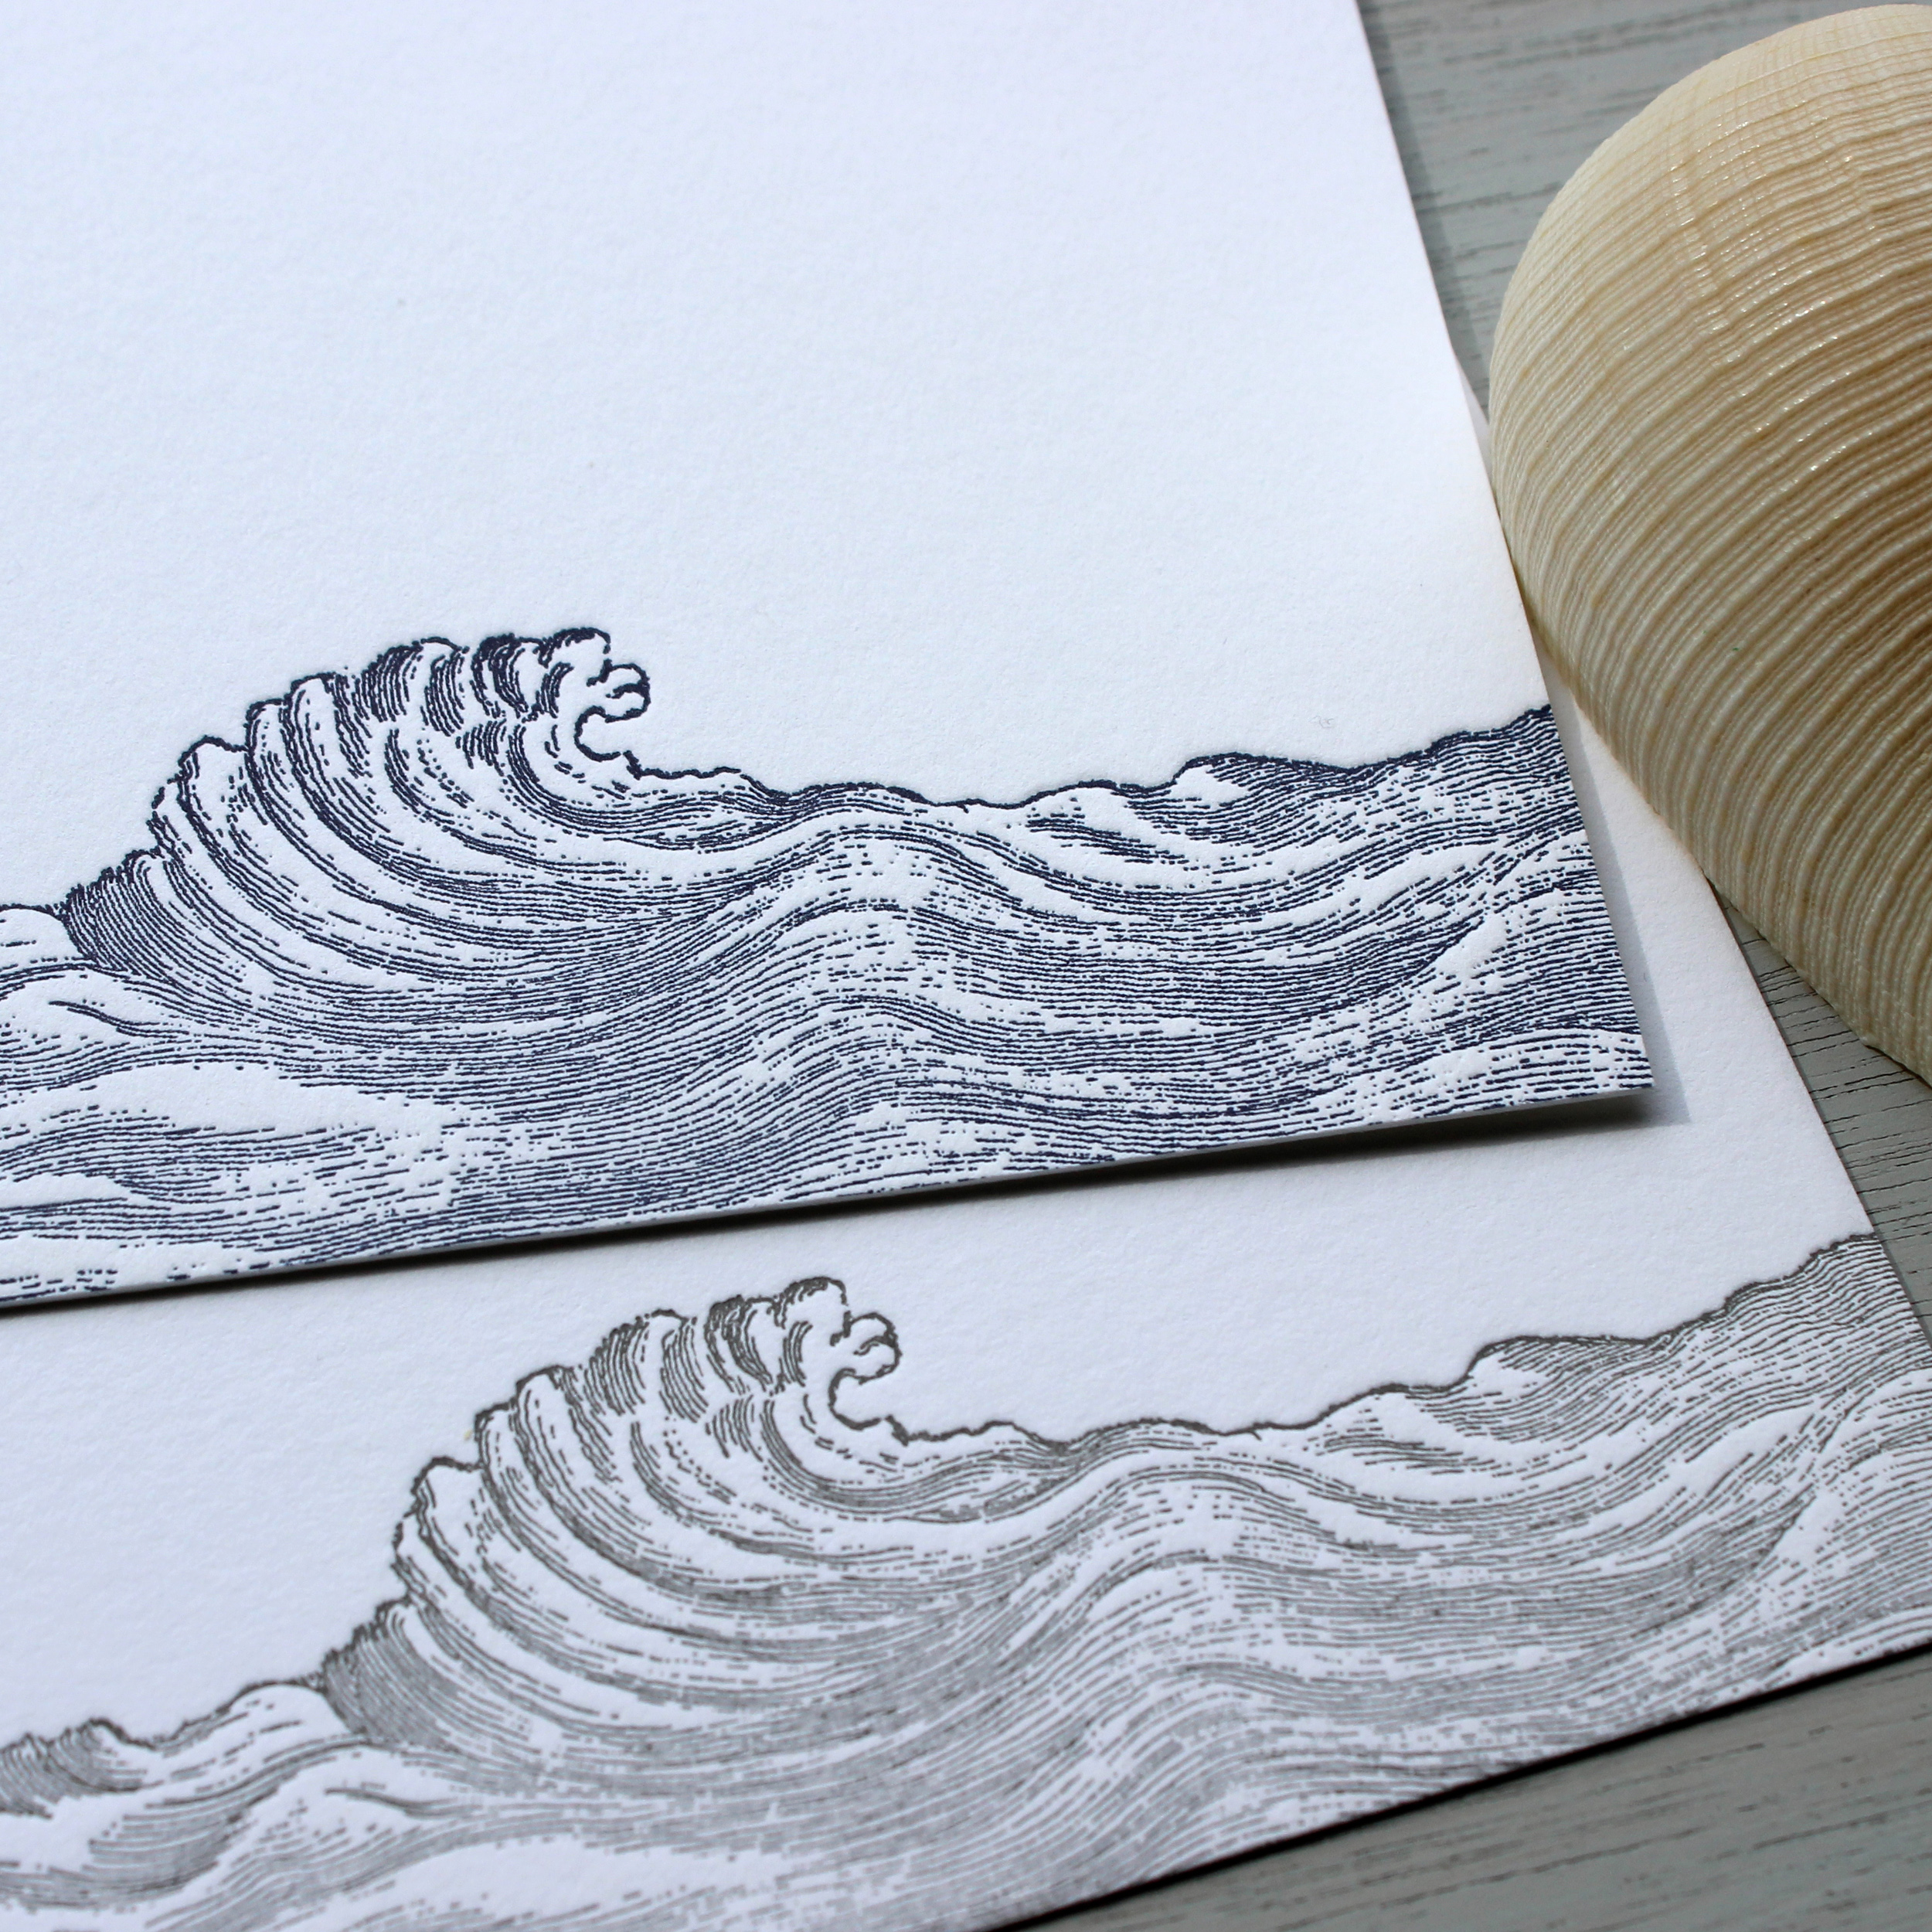 Navy-Waves-Ocean-Letterpress-Stationery-new1.jpg